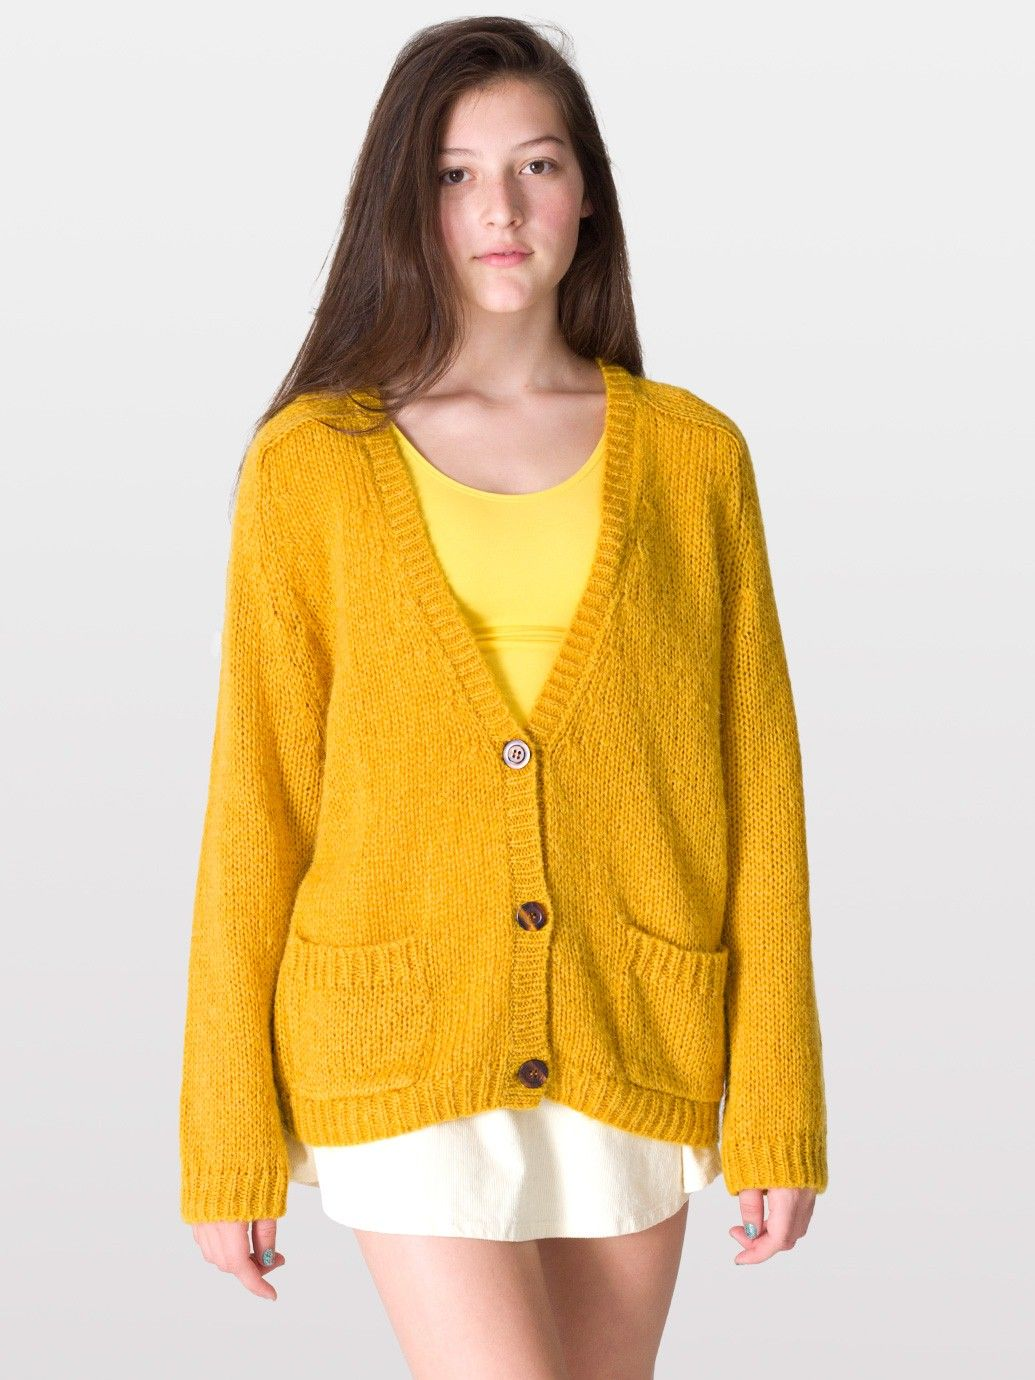 American Apparel - Mohair Loose Cardigan | Fashion Inspiration ...